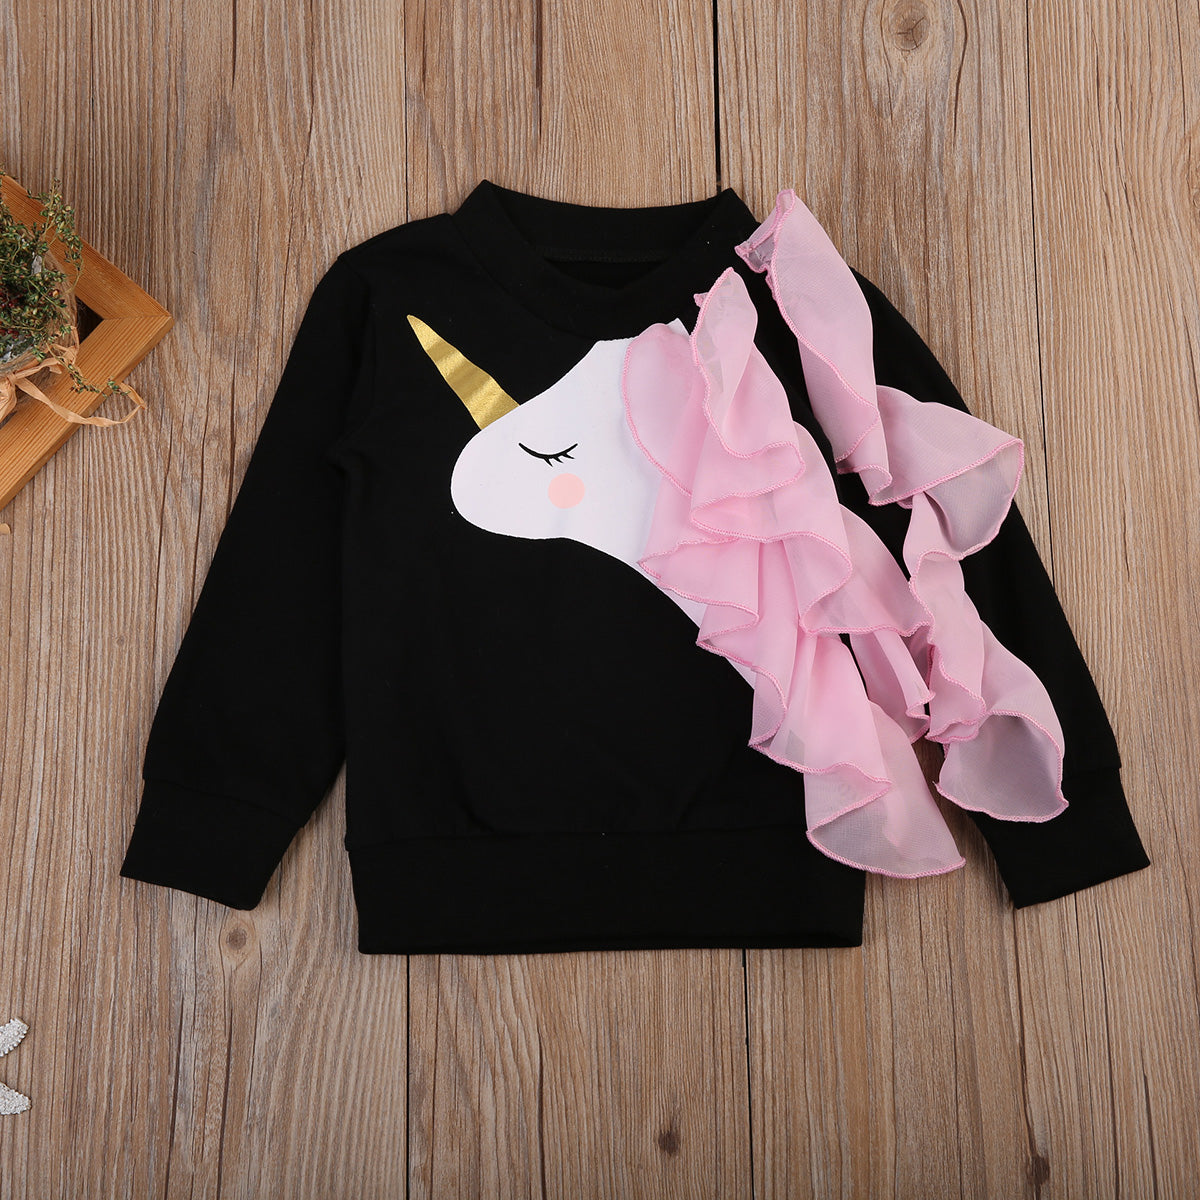 Unicorn Sweatshirt Clothes